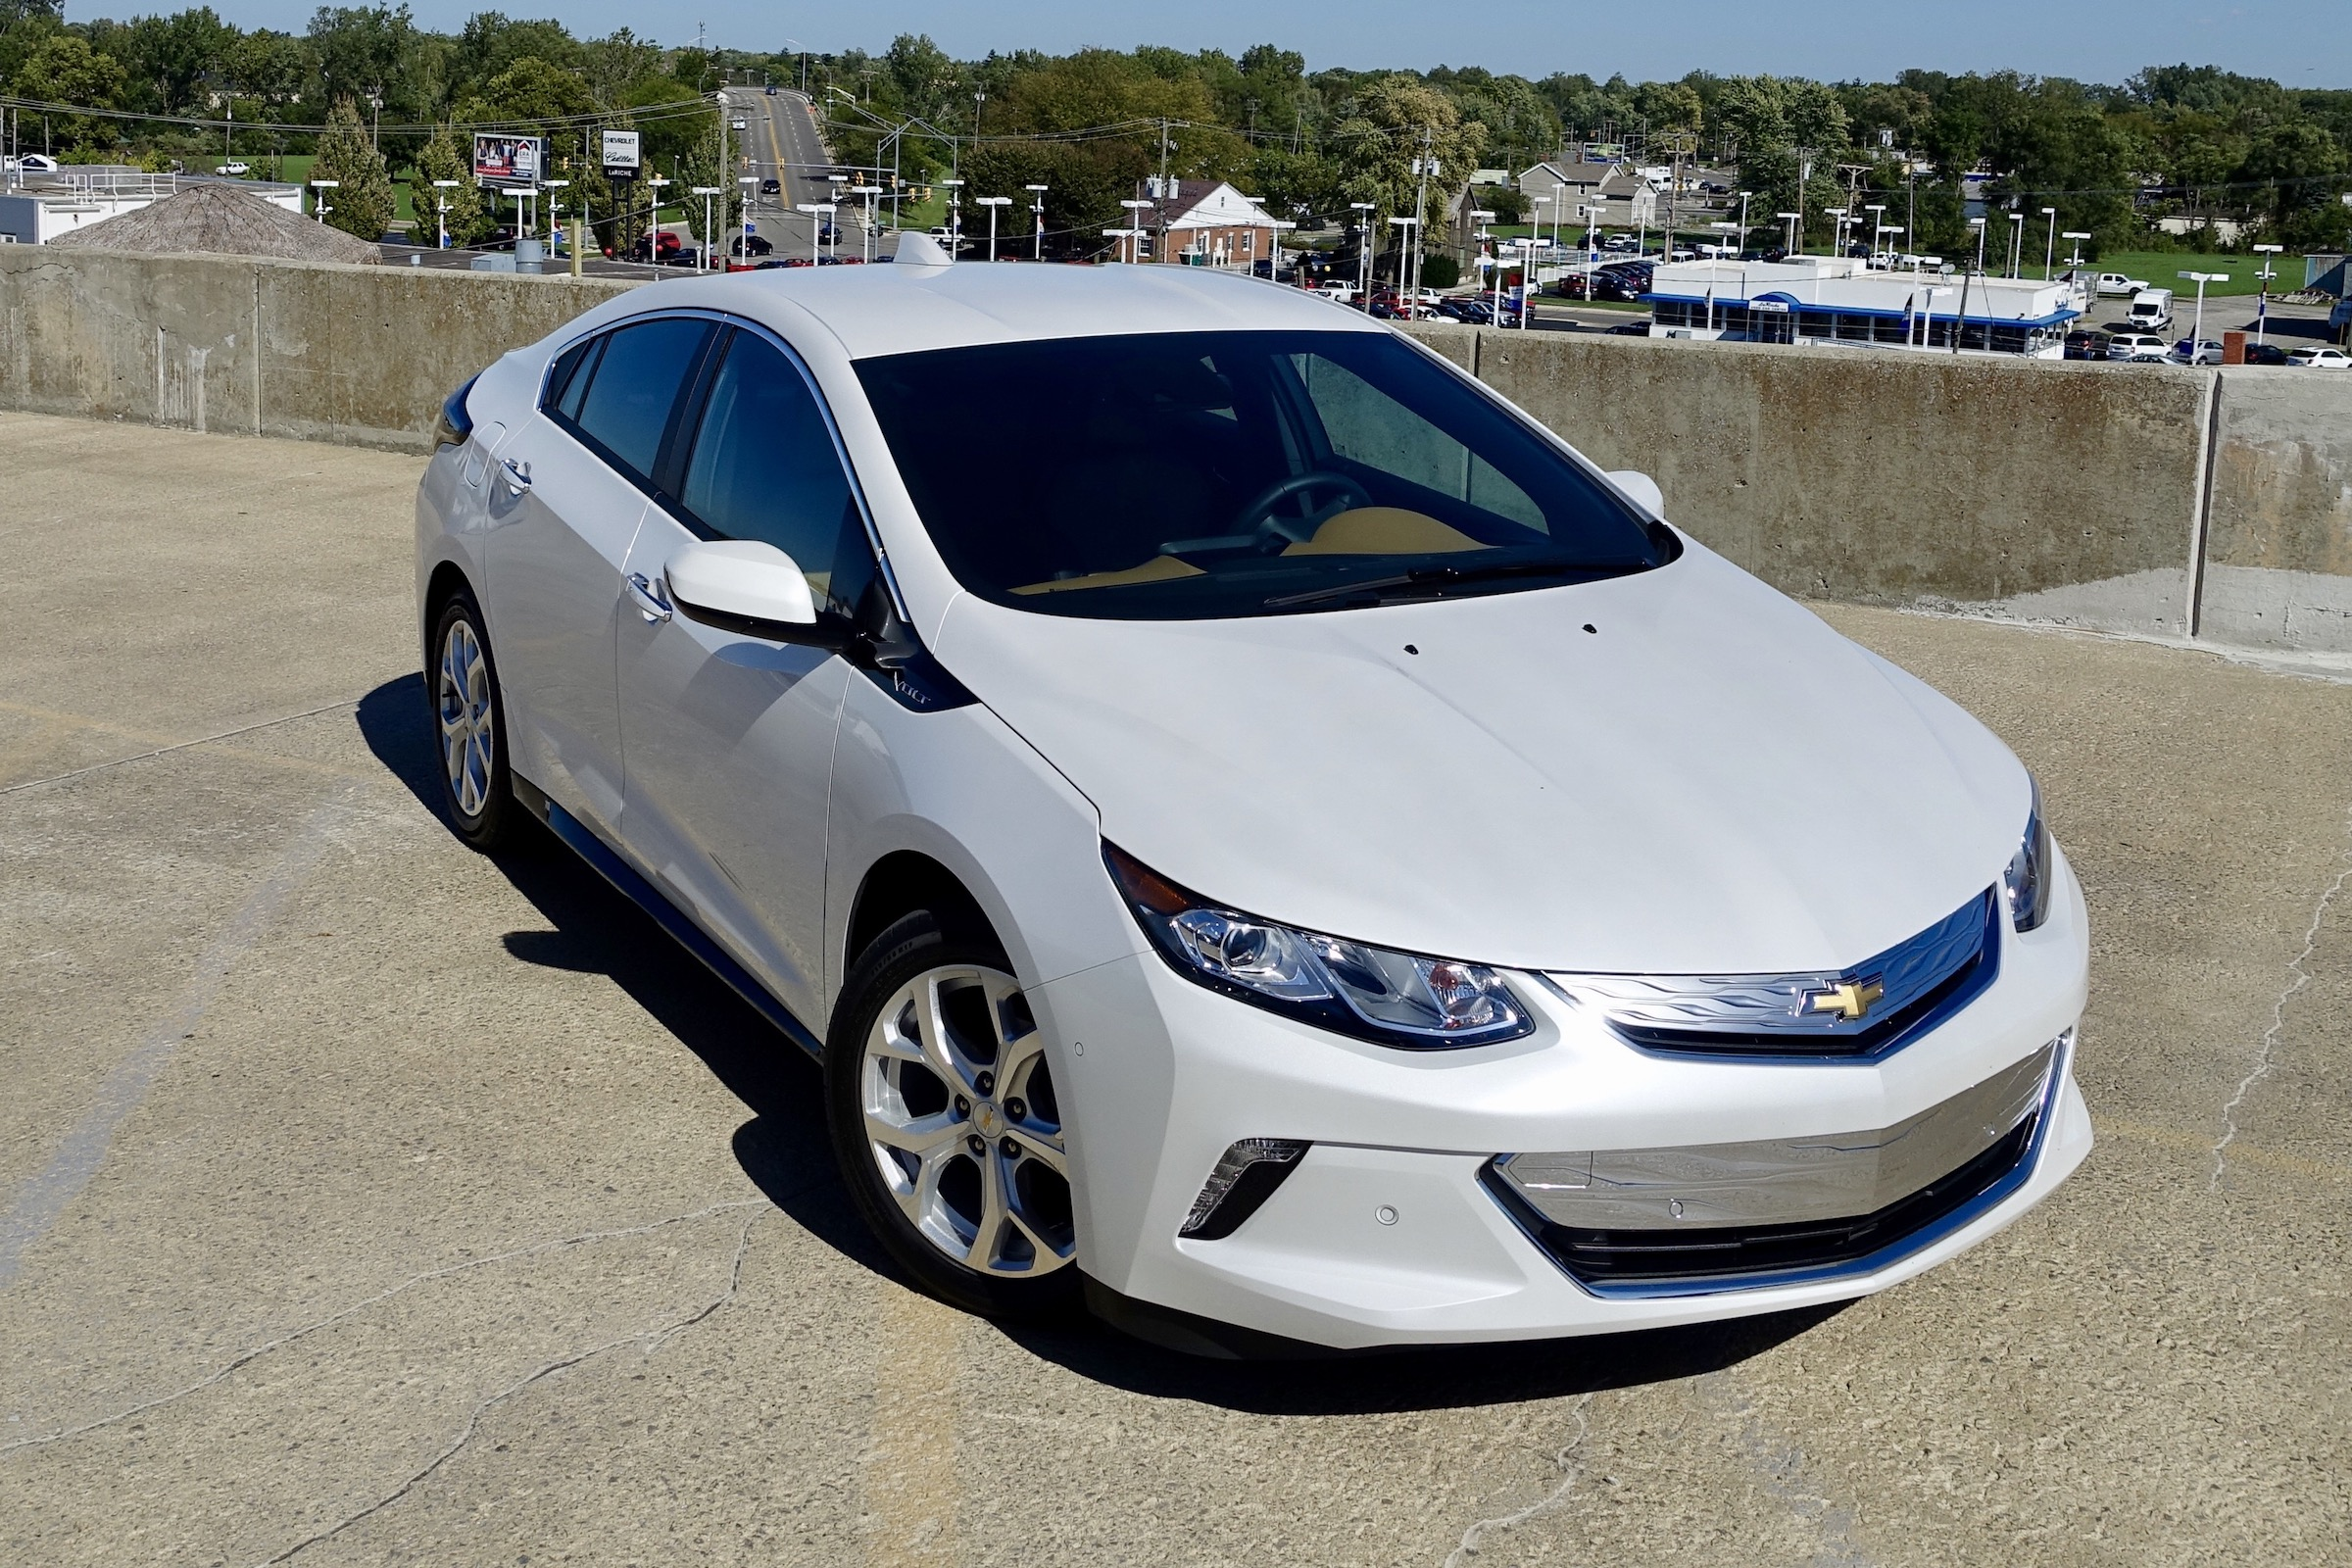 2017 Chevy Volt Review Car The Will Steer And Provide Acceleration But You Are In Charge Of Stopping